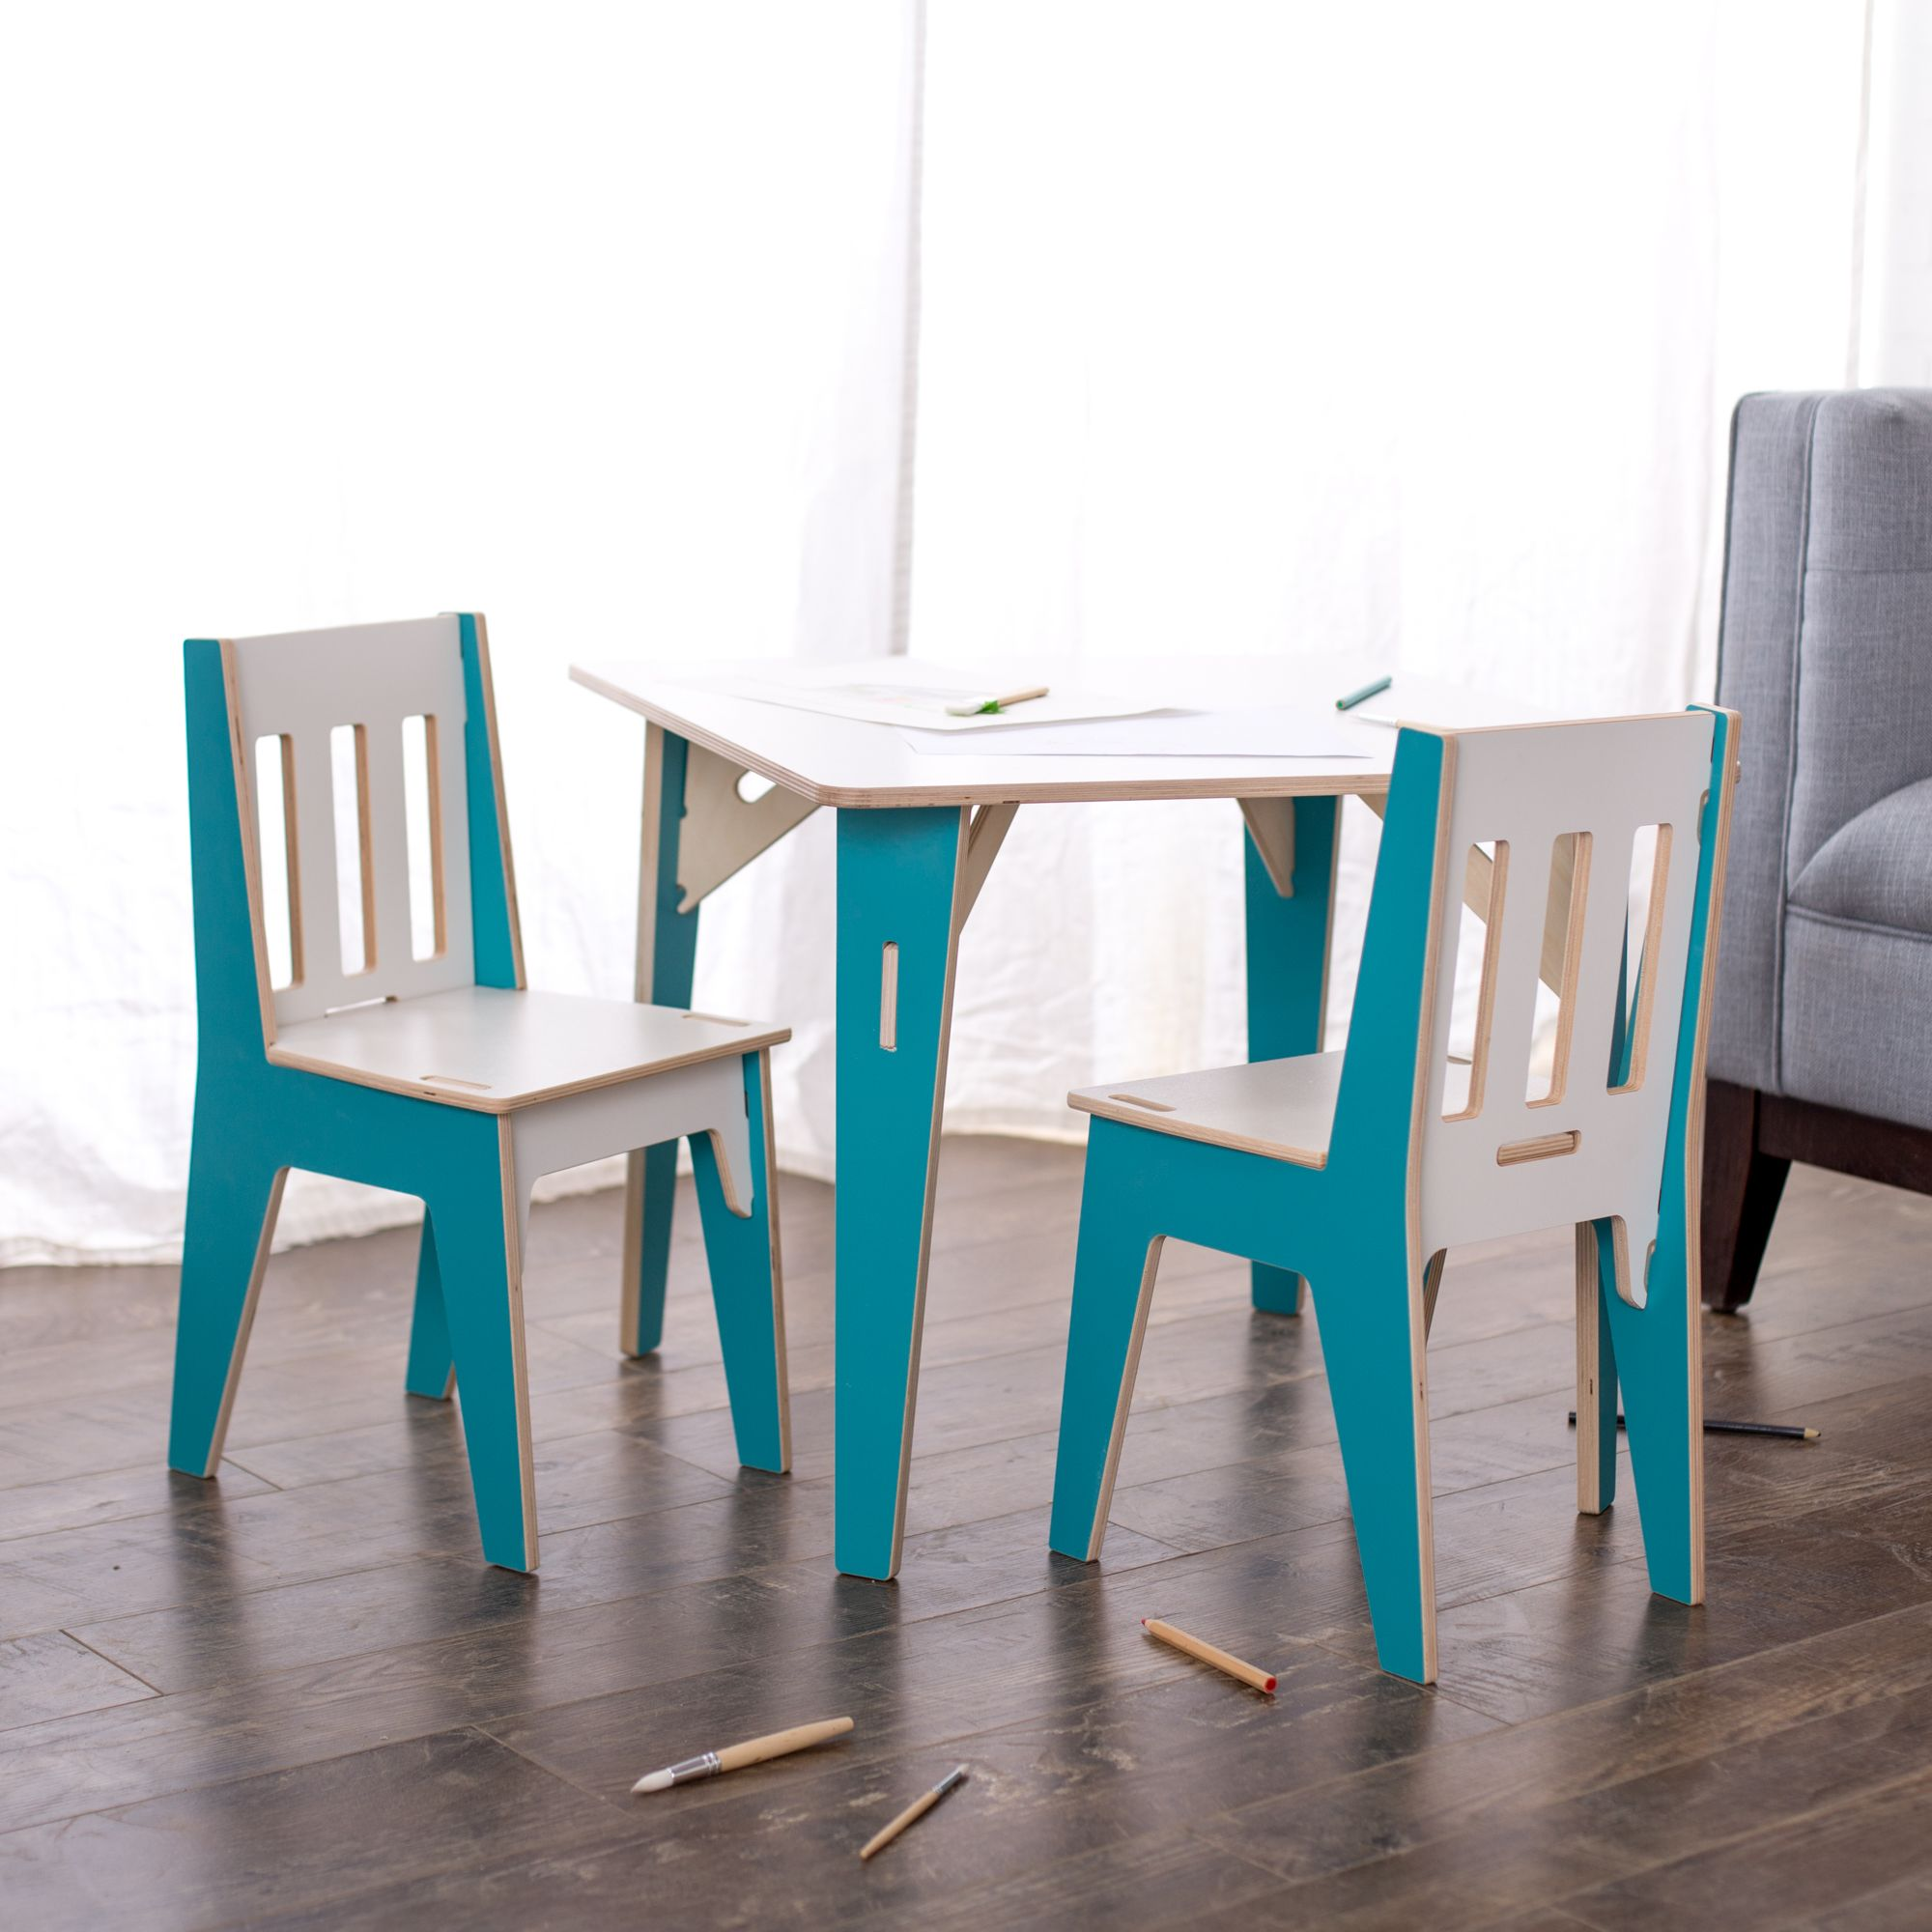 Wooden Kids Table And Chairs Kids Wooden Table Wooden Table And Chairs Modern Childrens Furniture